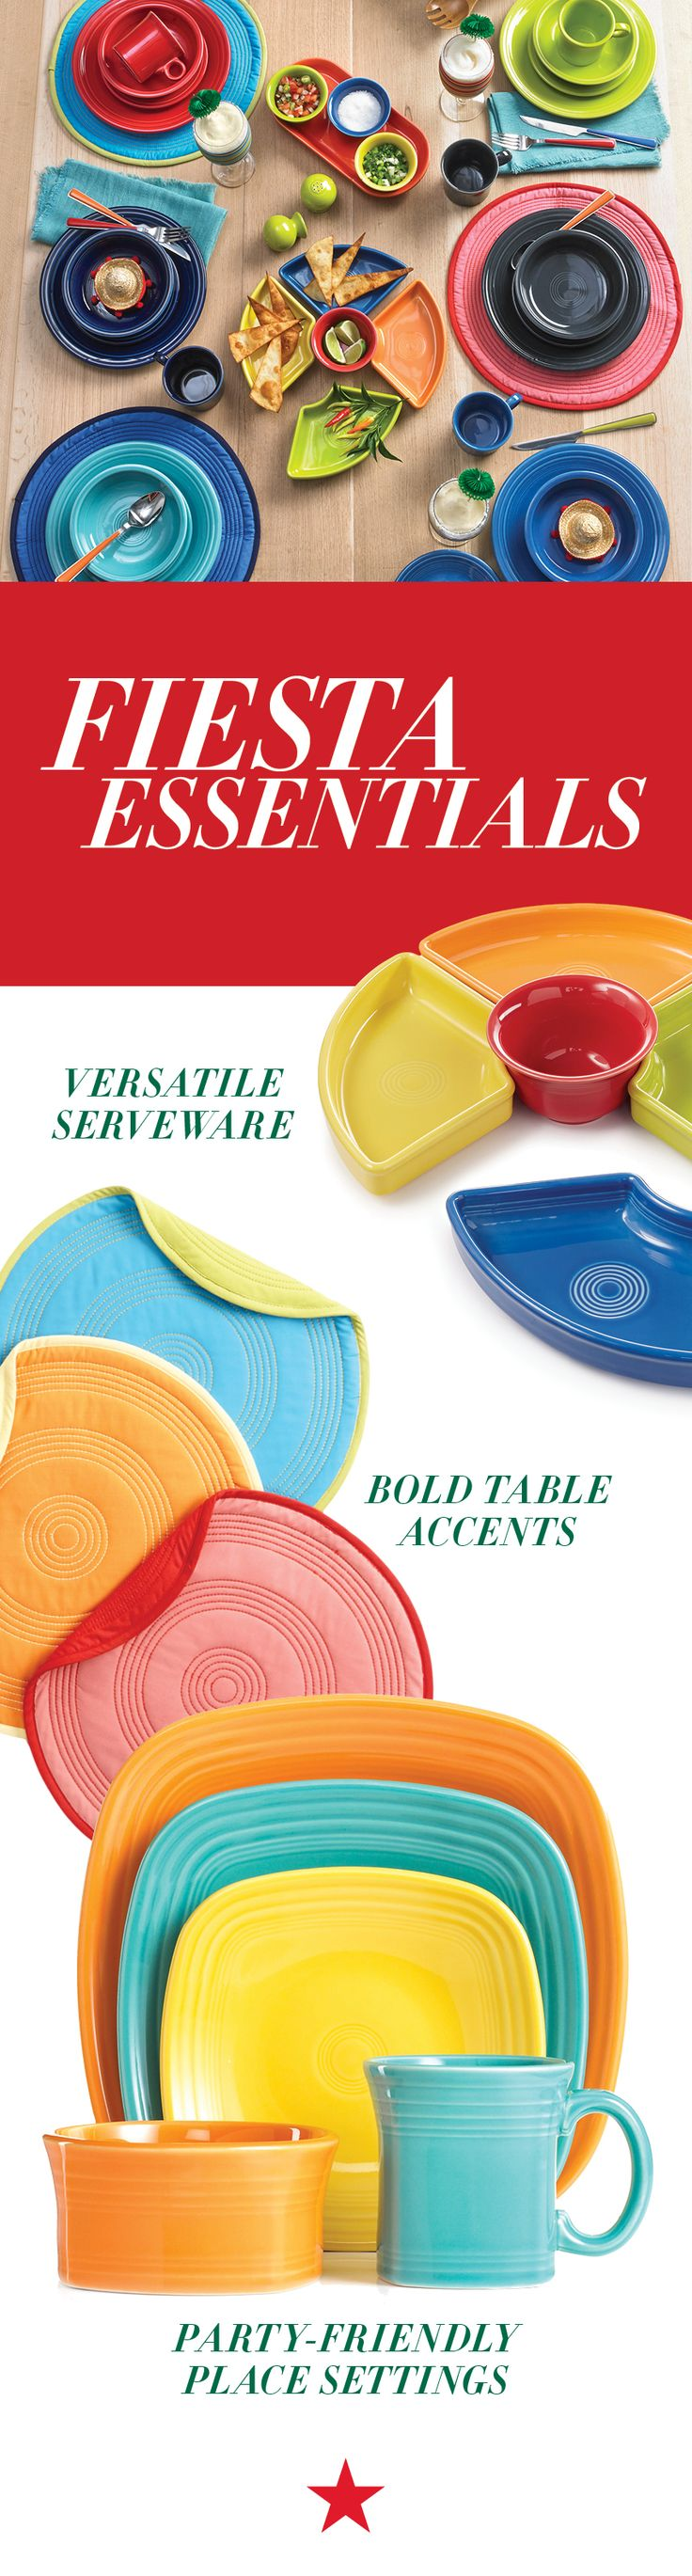 Everything you need for your next fiesta is right at your fingertips! Colorful plates, party-ready table linens, bright entertaining pieces...consider yourself served.